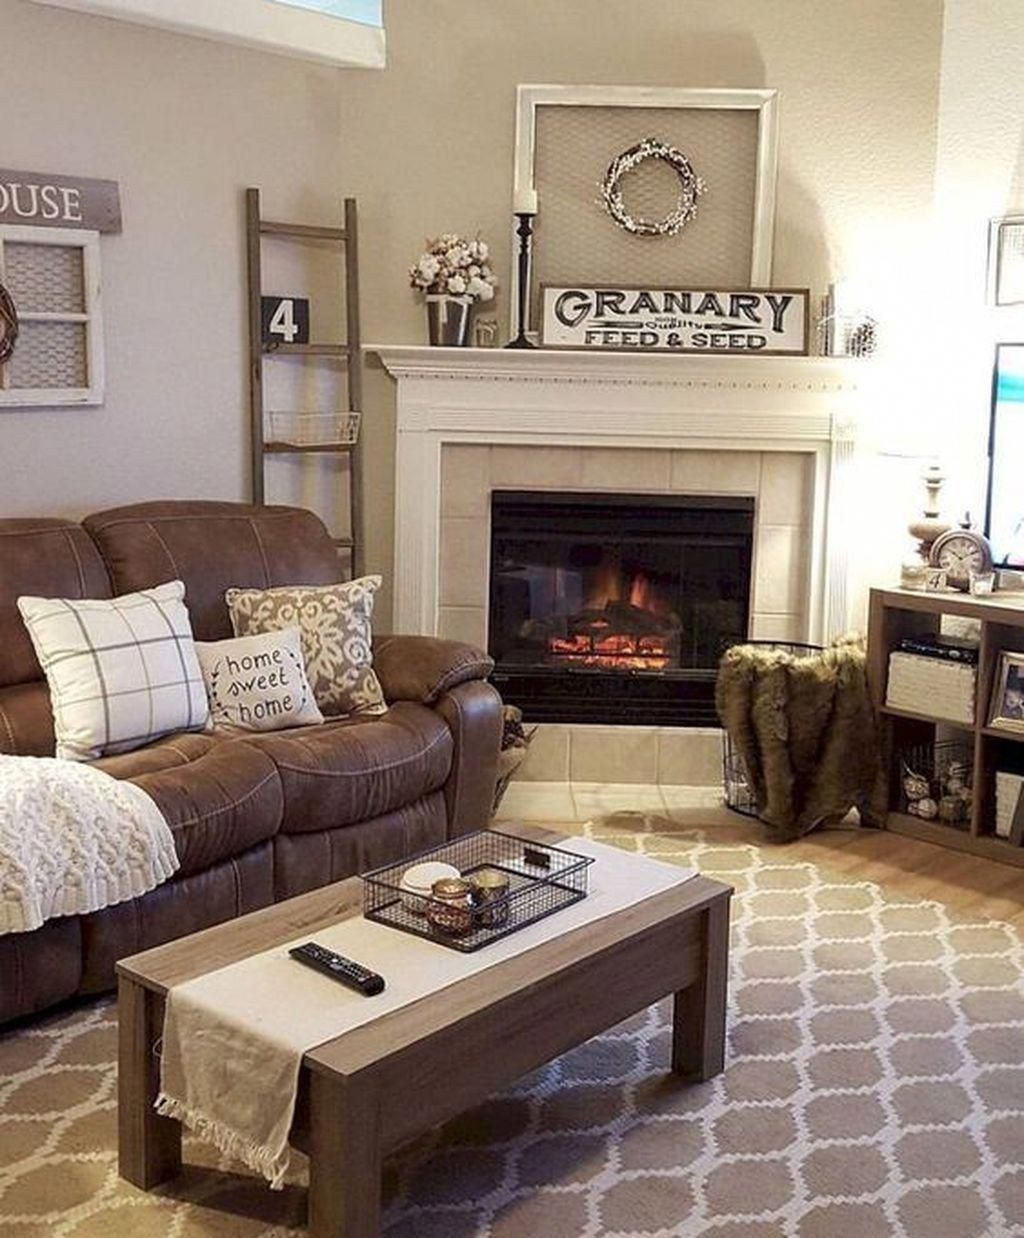 46 Cozy Farmhouse Living Room Decor Ideas That Make You Feel In Village Bui Brown Couch Living Room Modern Farmhouse Living Room Rustic Farmhouse Living Room